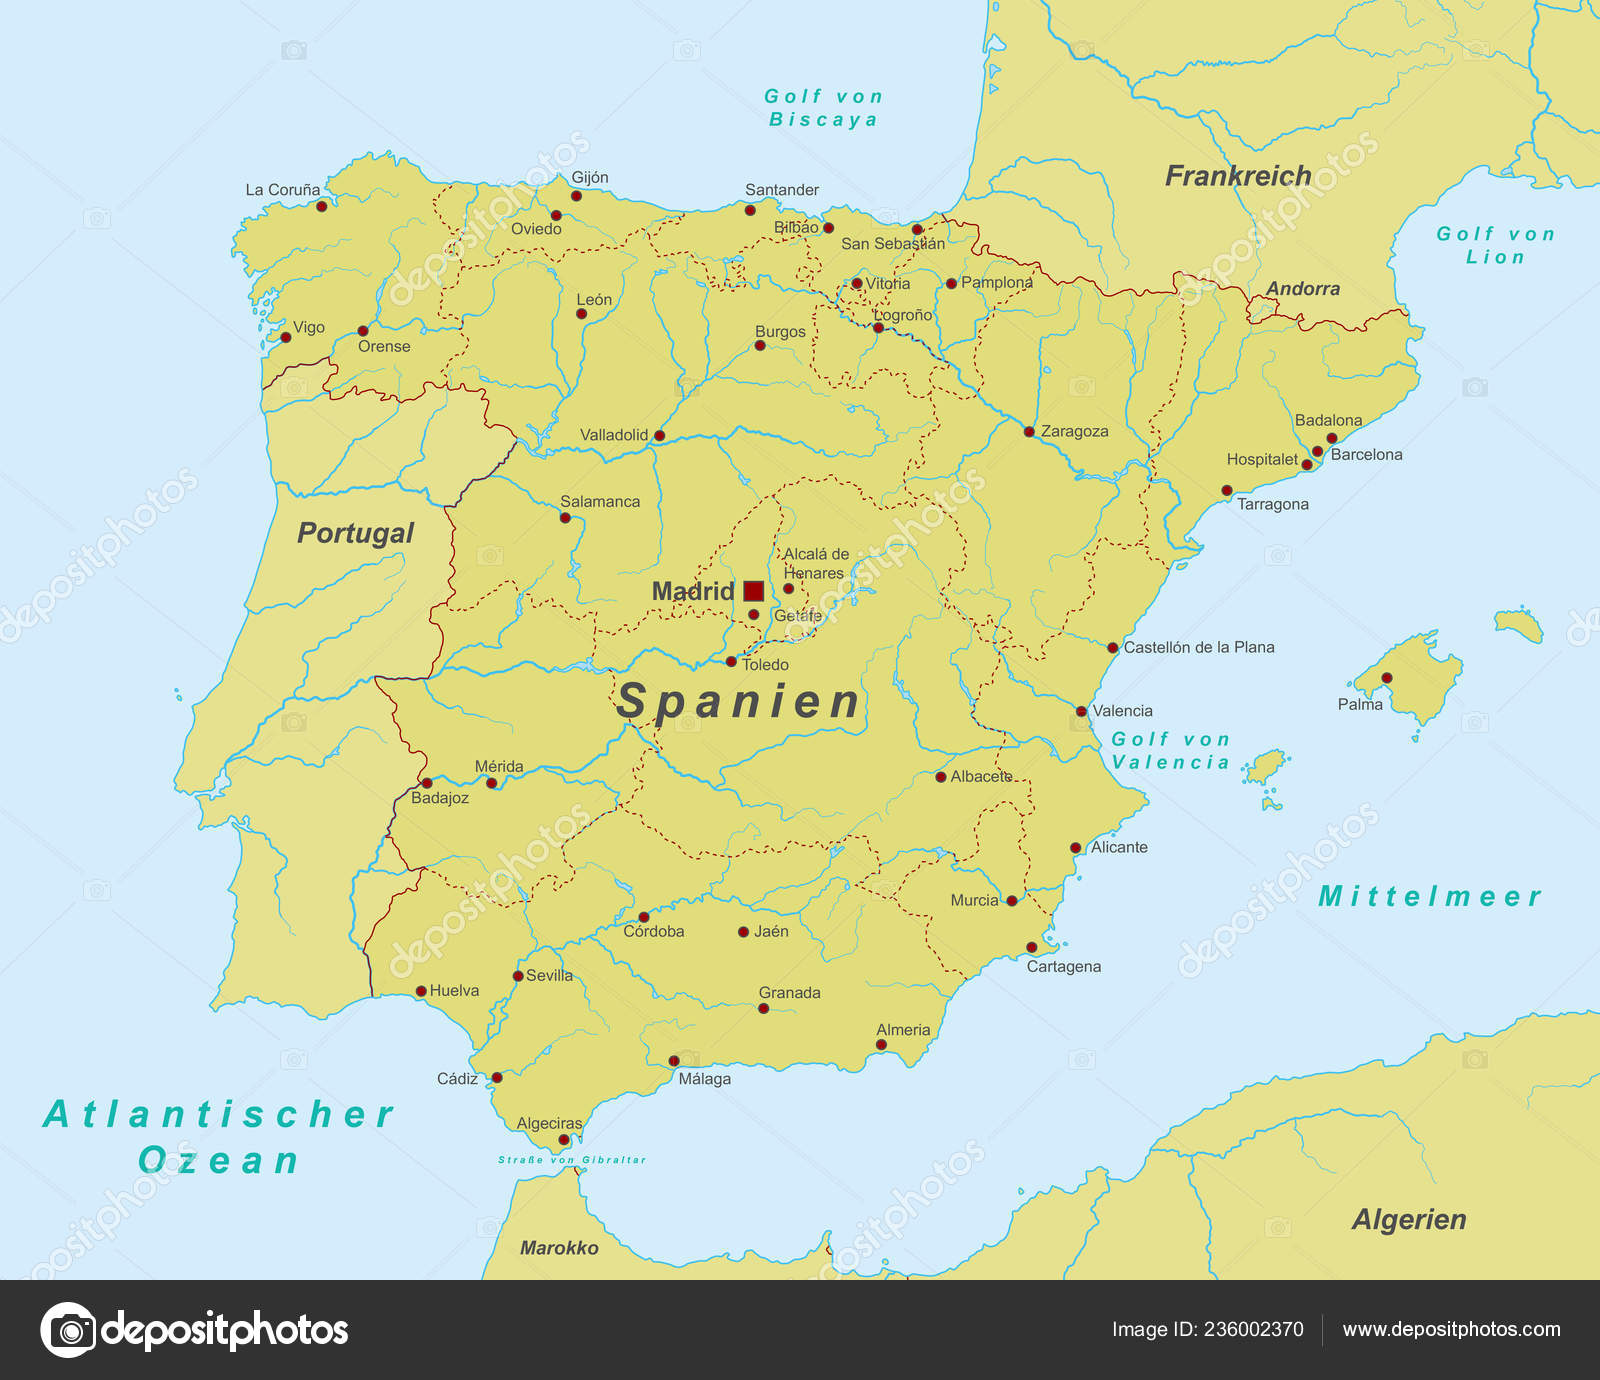 Detailed Map Of Spain.Spain Map Spain High Detailed Stock Vector C Ii Graphics 236002370